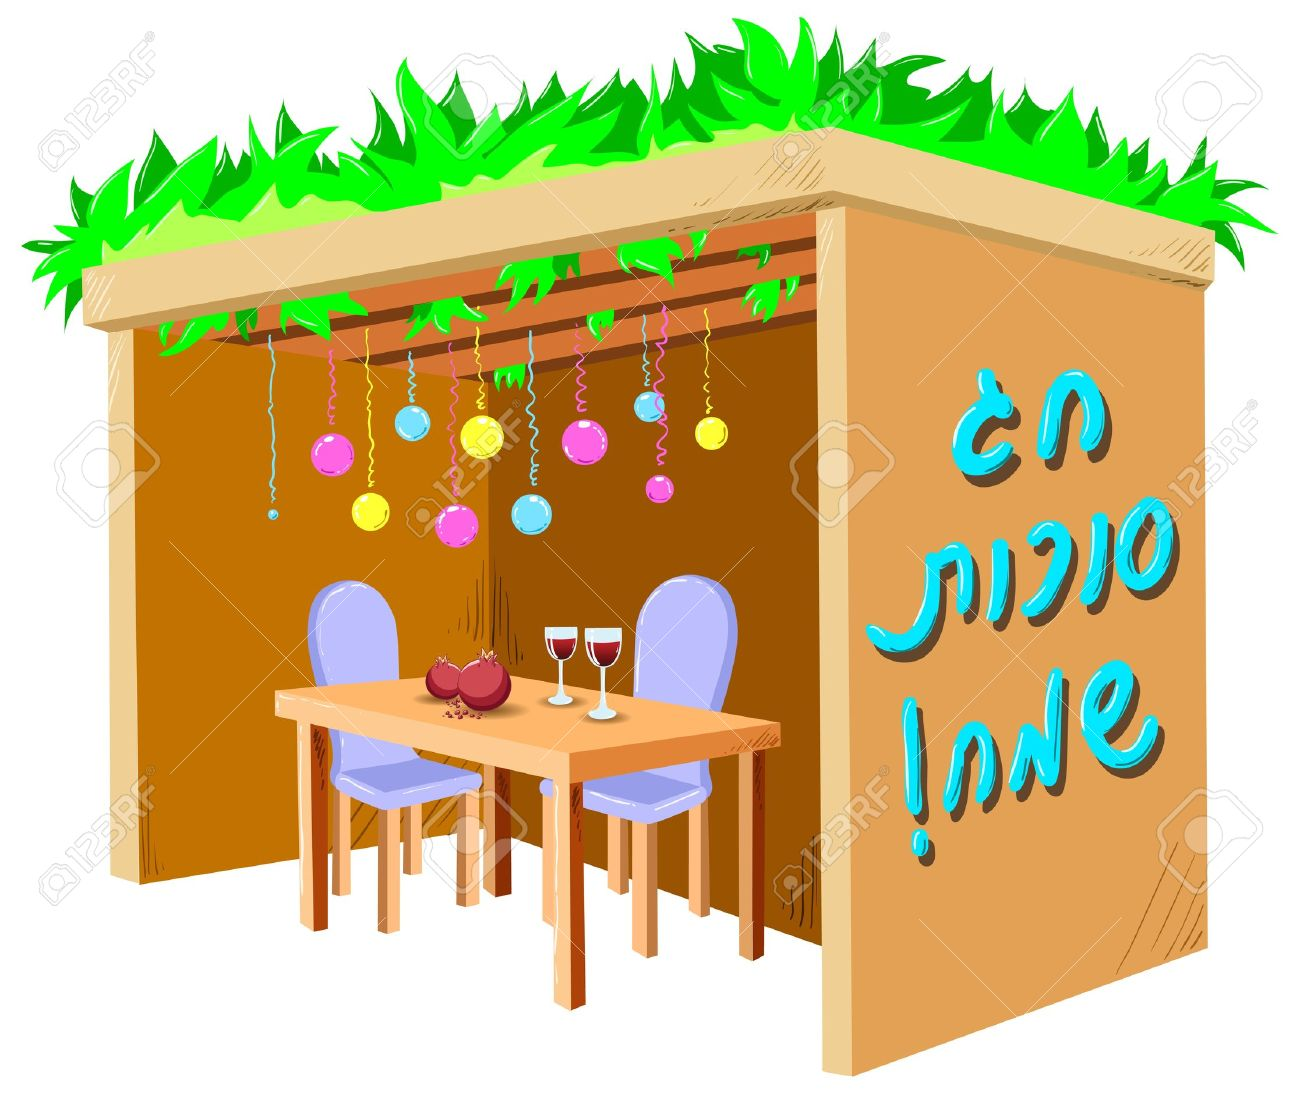 Clipart succah library 56+ Sukkot Clipart | ClipartLook library